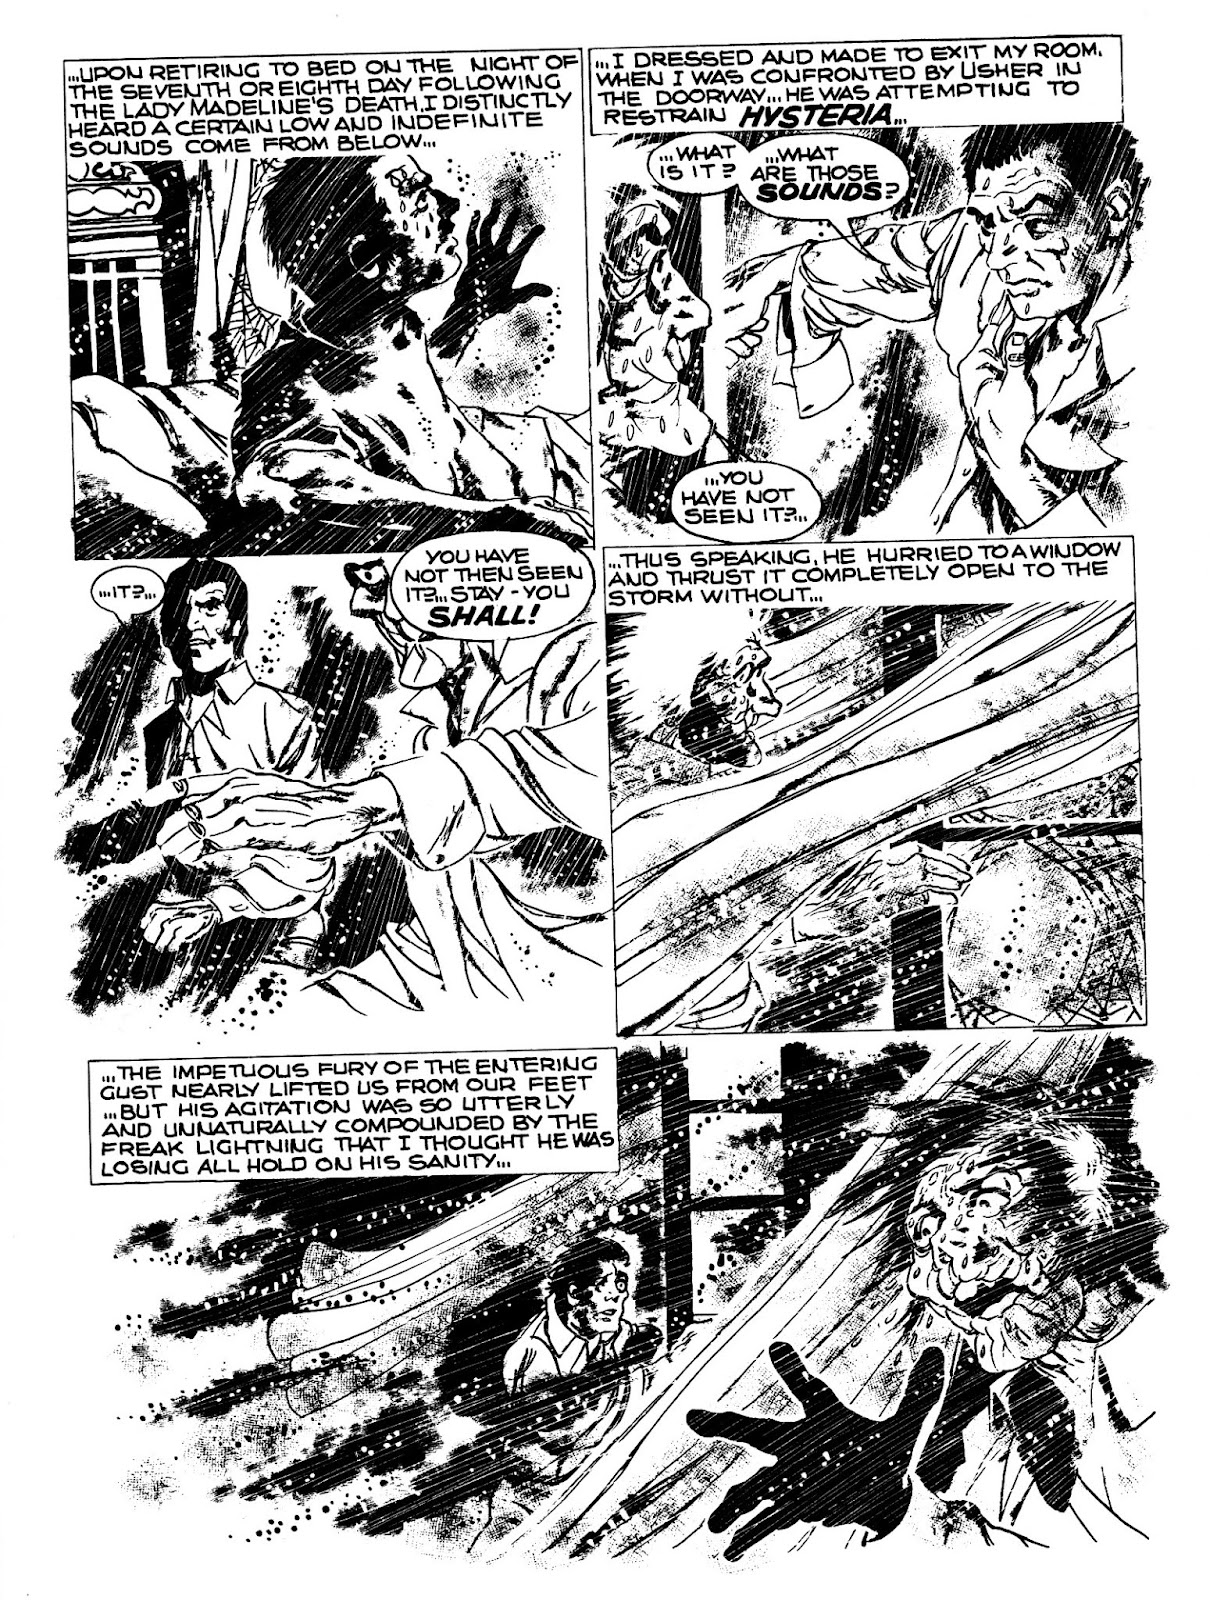 Scream (1973) issue 3 - Page 41